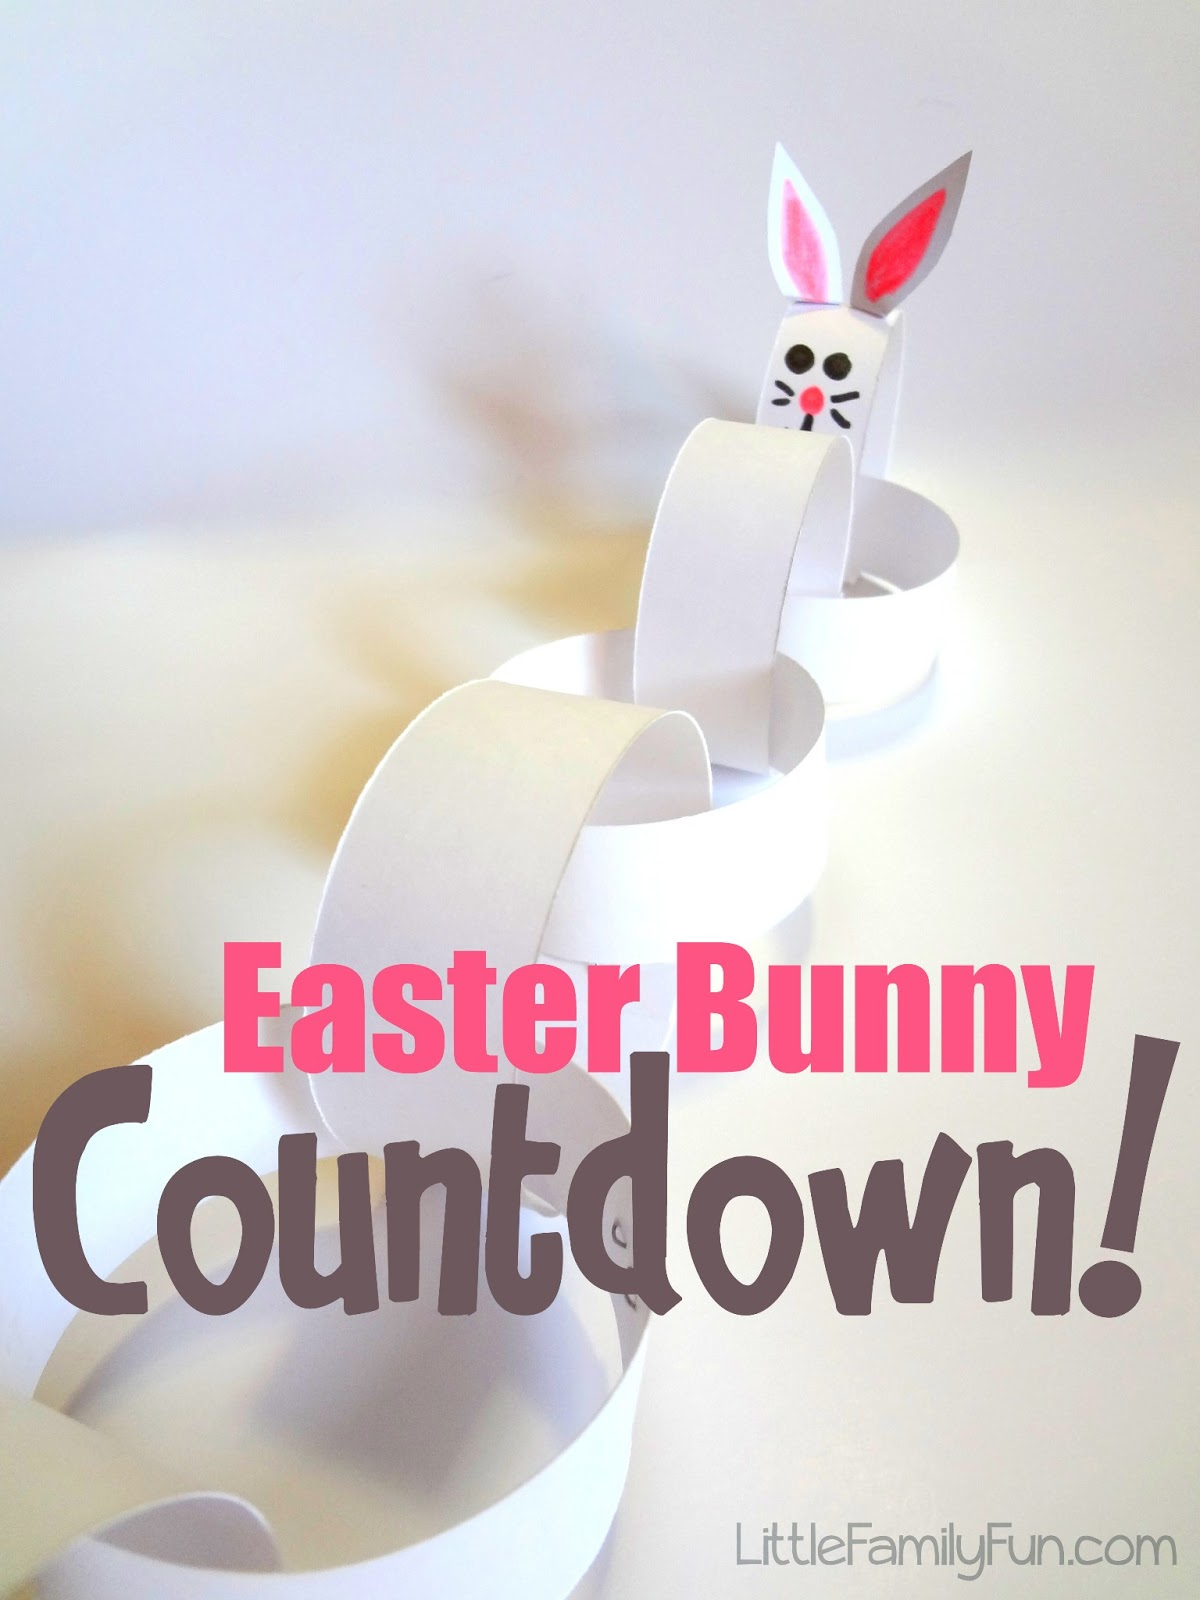 Little family fun easter bunny countdown easter bunny countdown negle Gallery